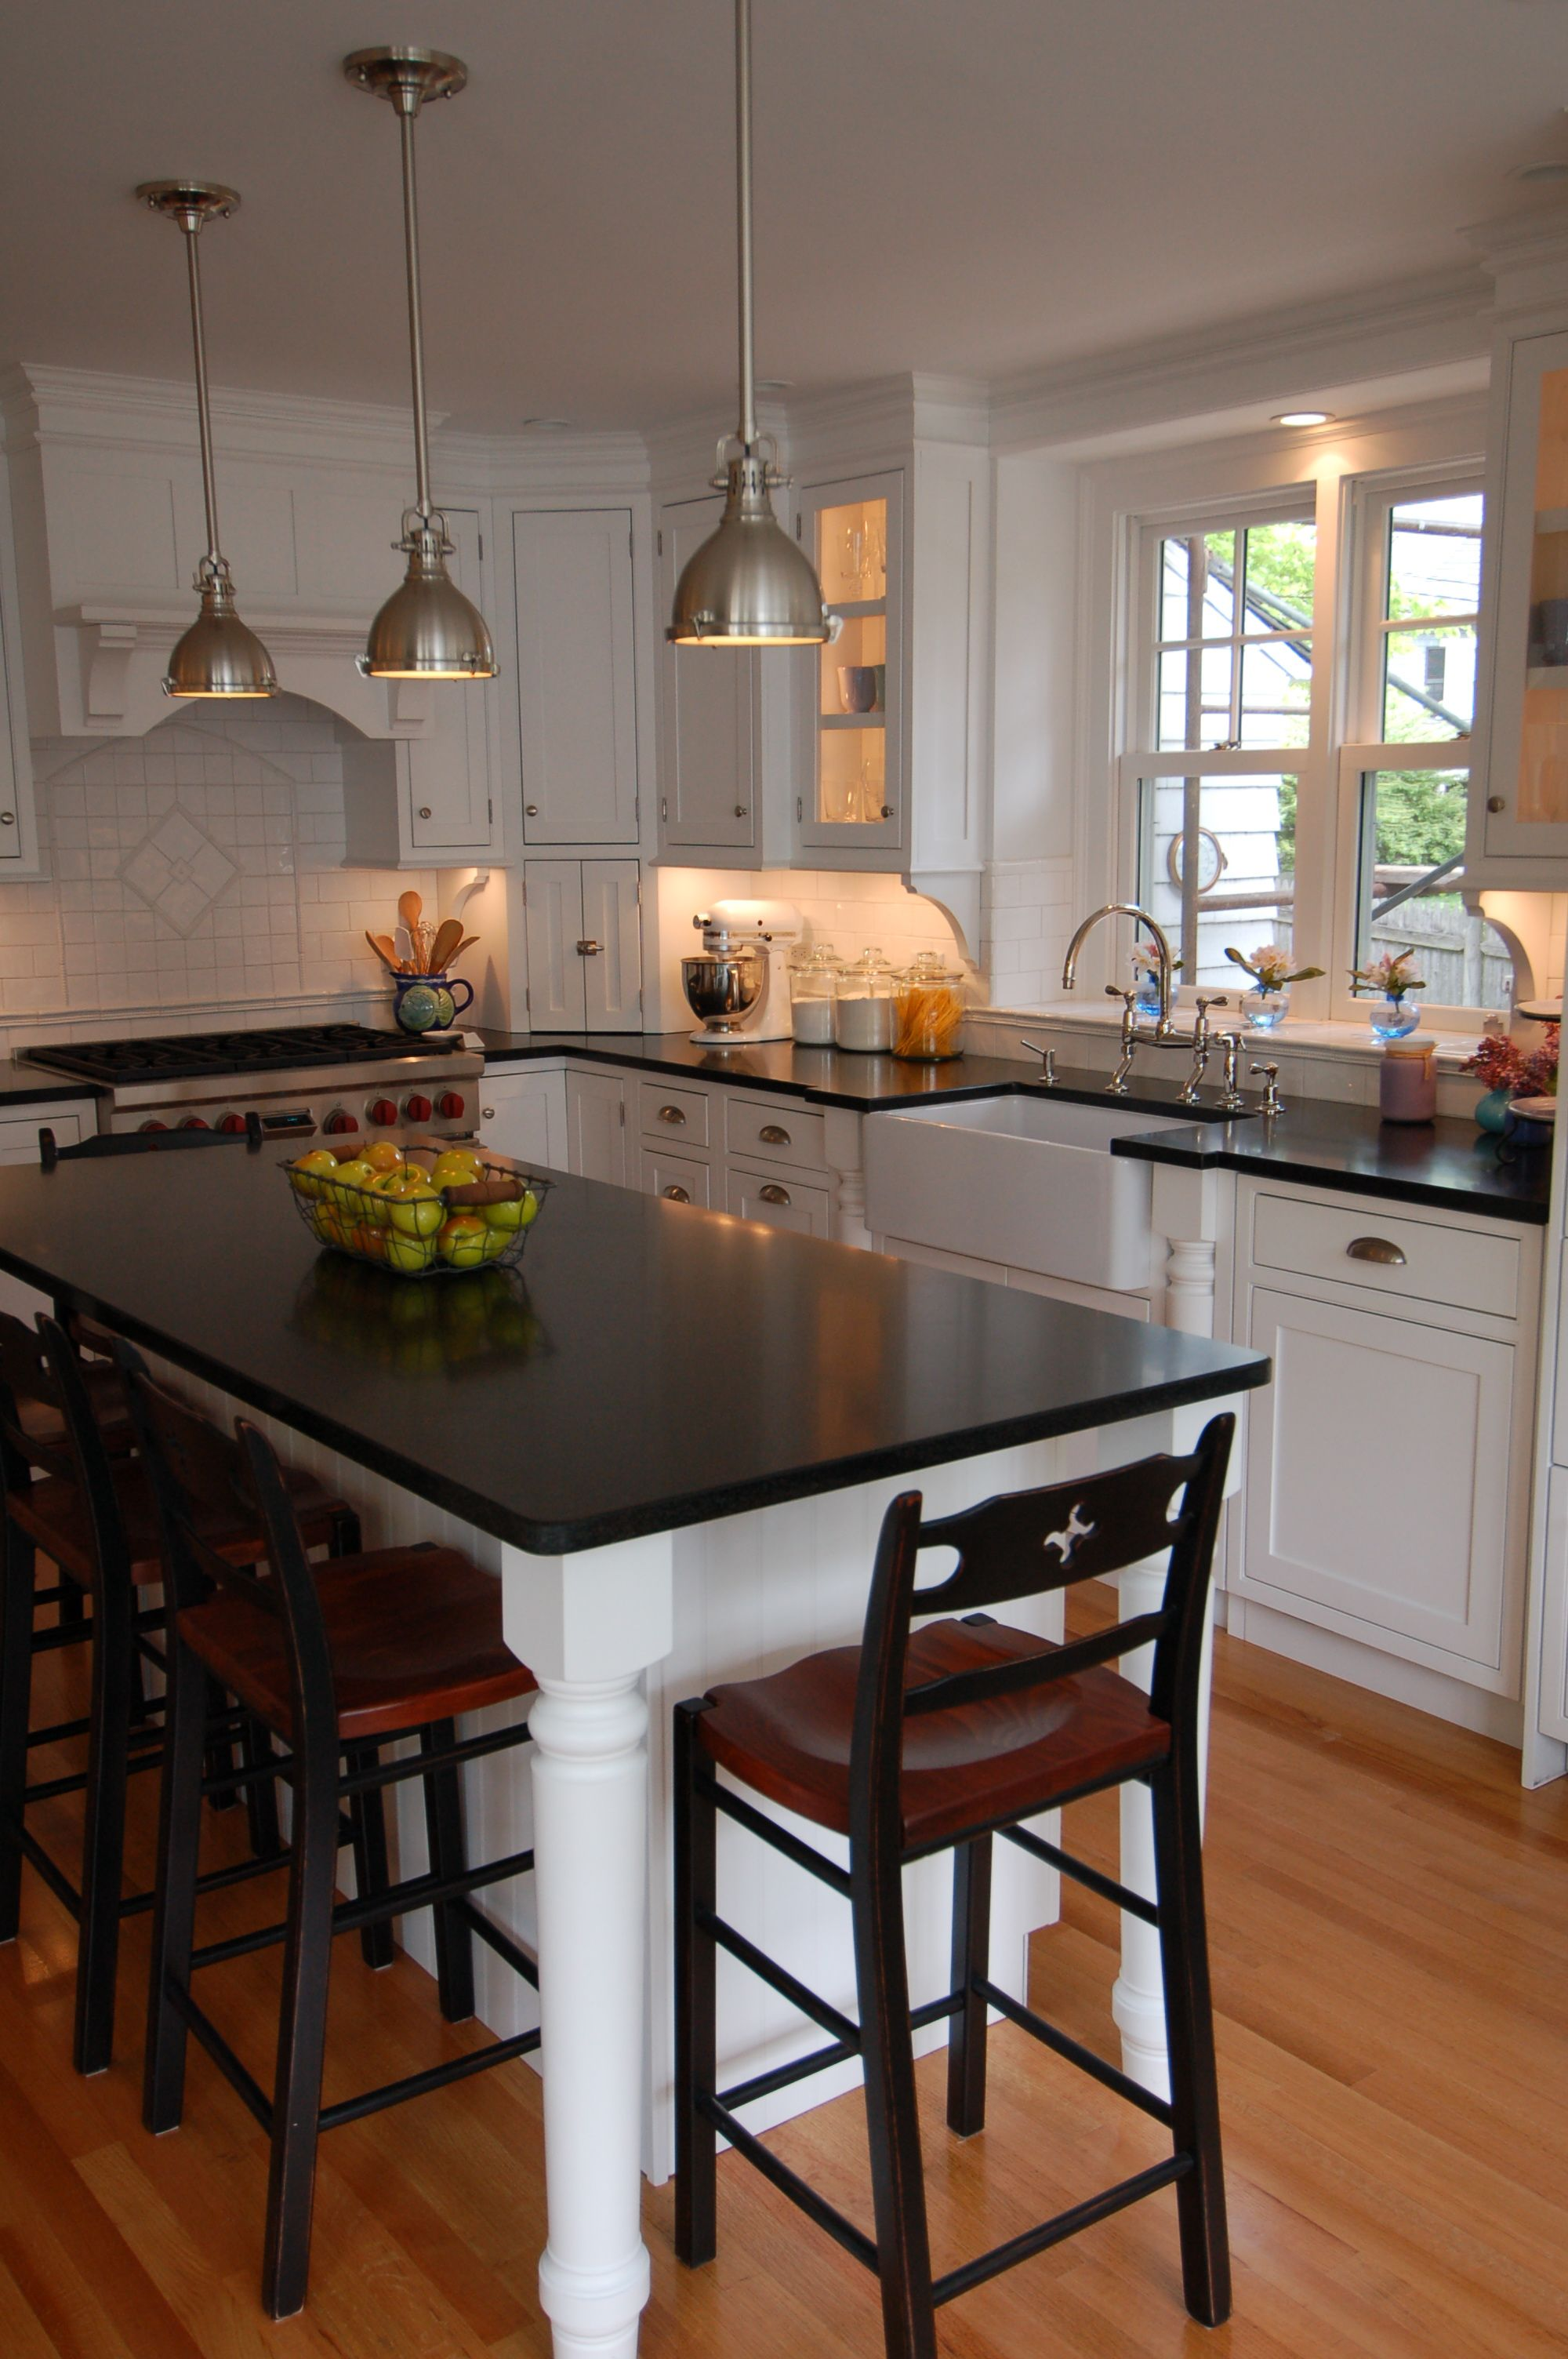 Table Ideas For Small Kitchens Sink And Stove Location With Island And Lamps Perfect